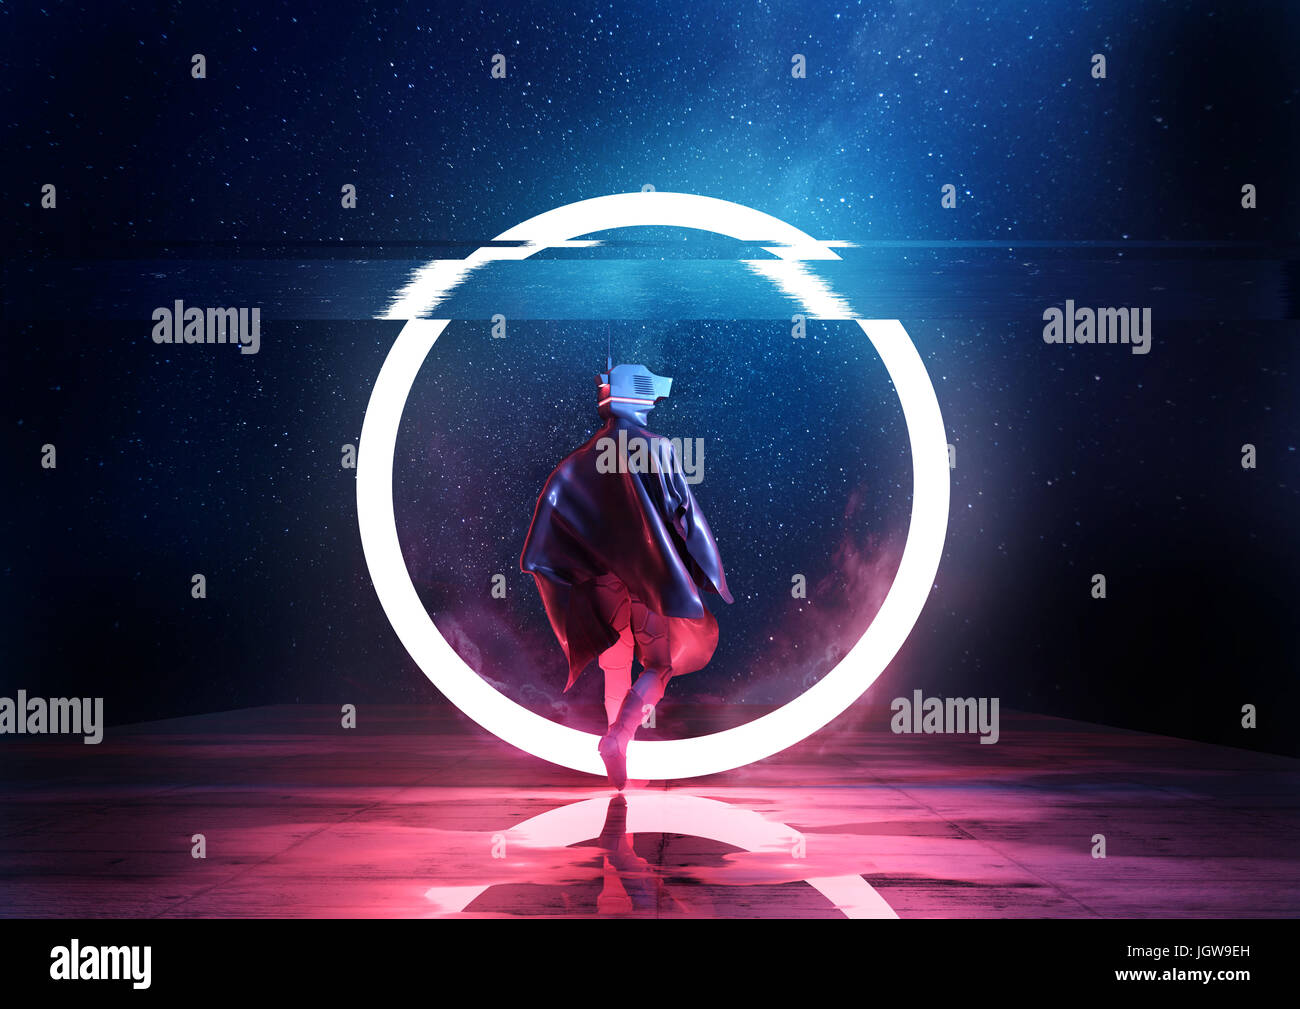 Retro Future. A futuristic spaceman walking thorugh a circle of light. 3D illustration - Stock Image